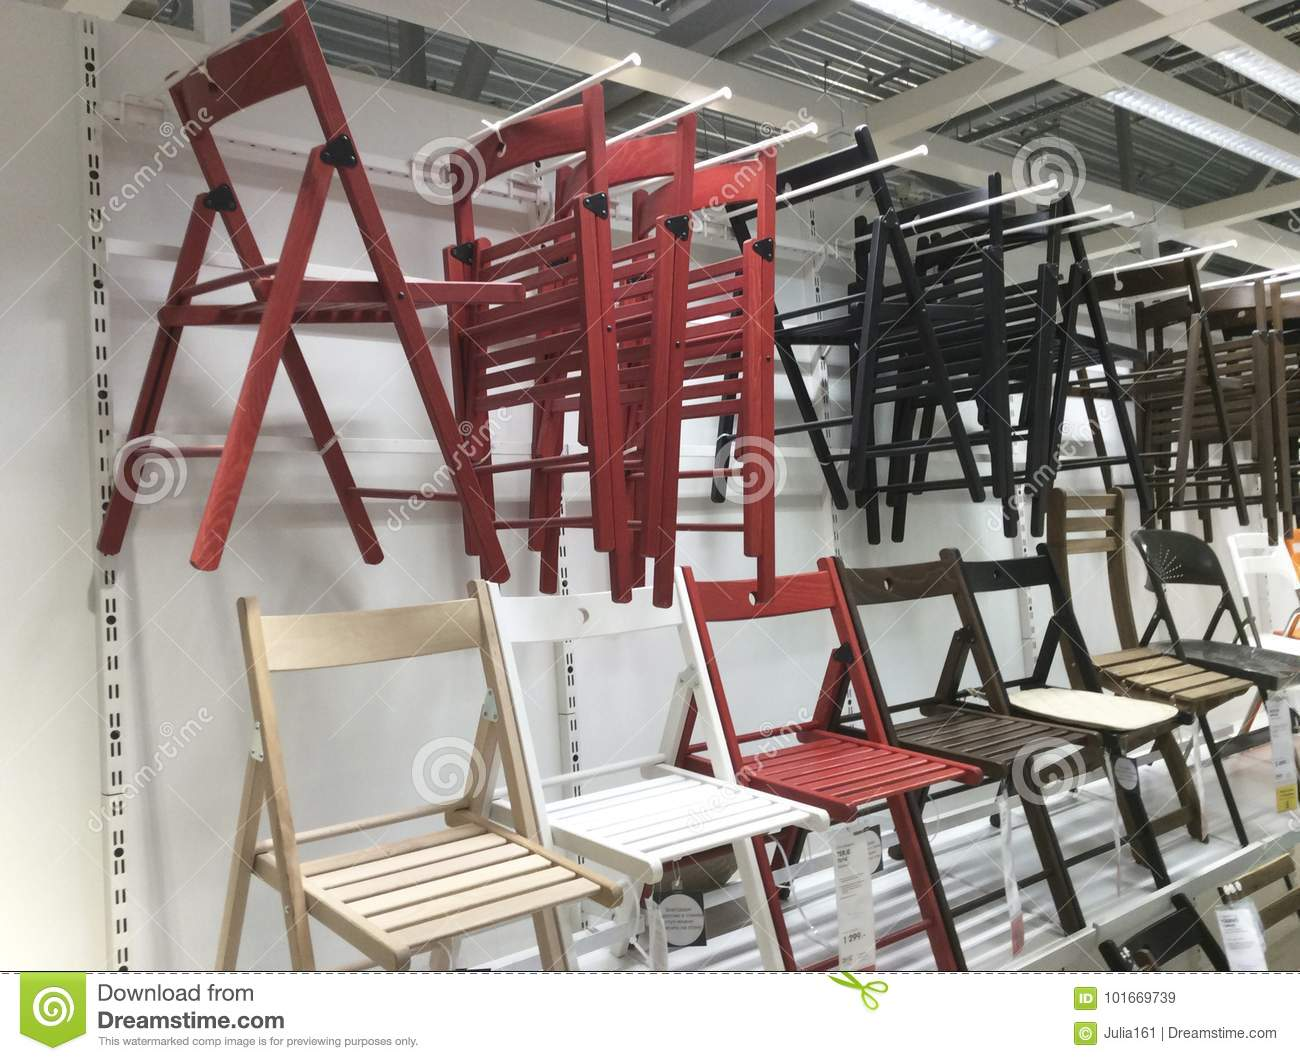 Folding Chairs In Ikea Shop Editorial Stock Image Image Of Paper